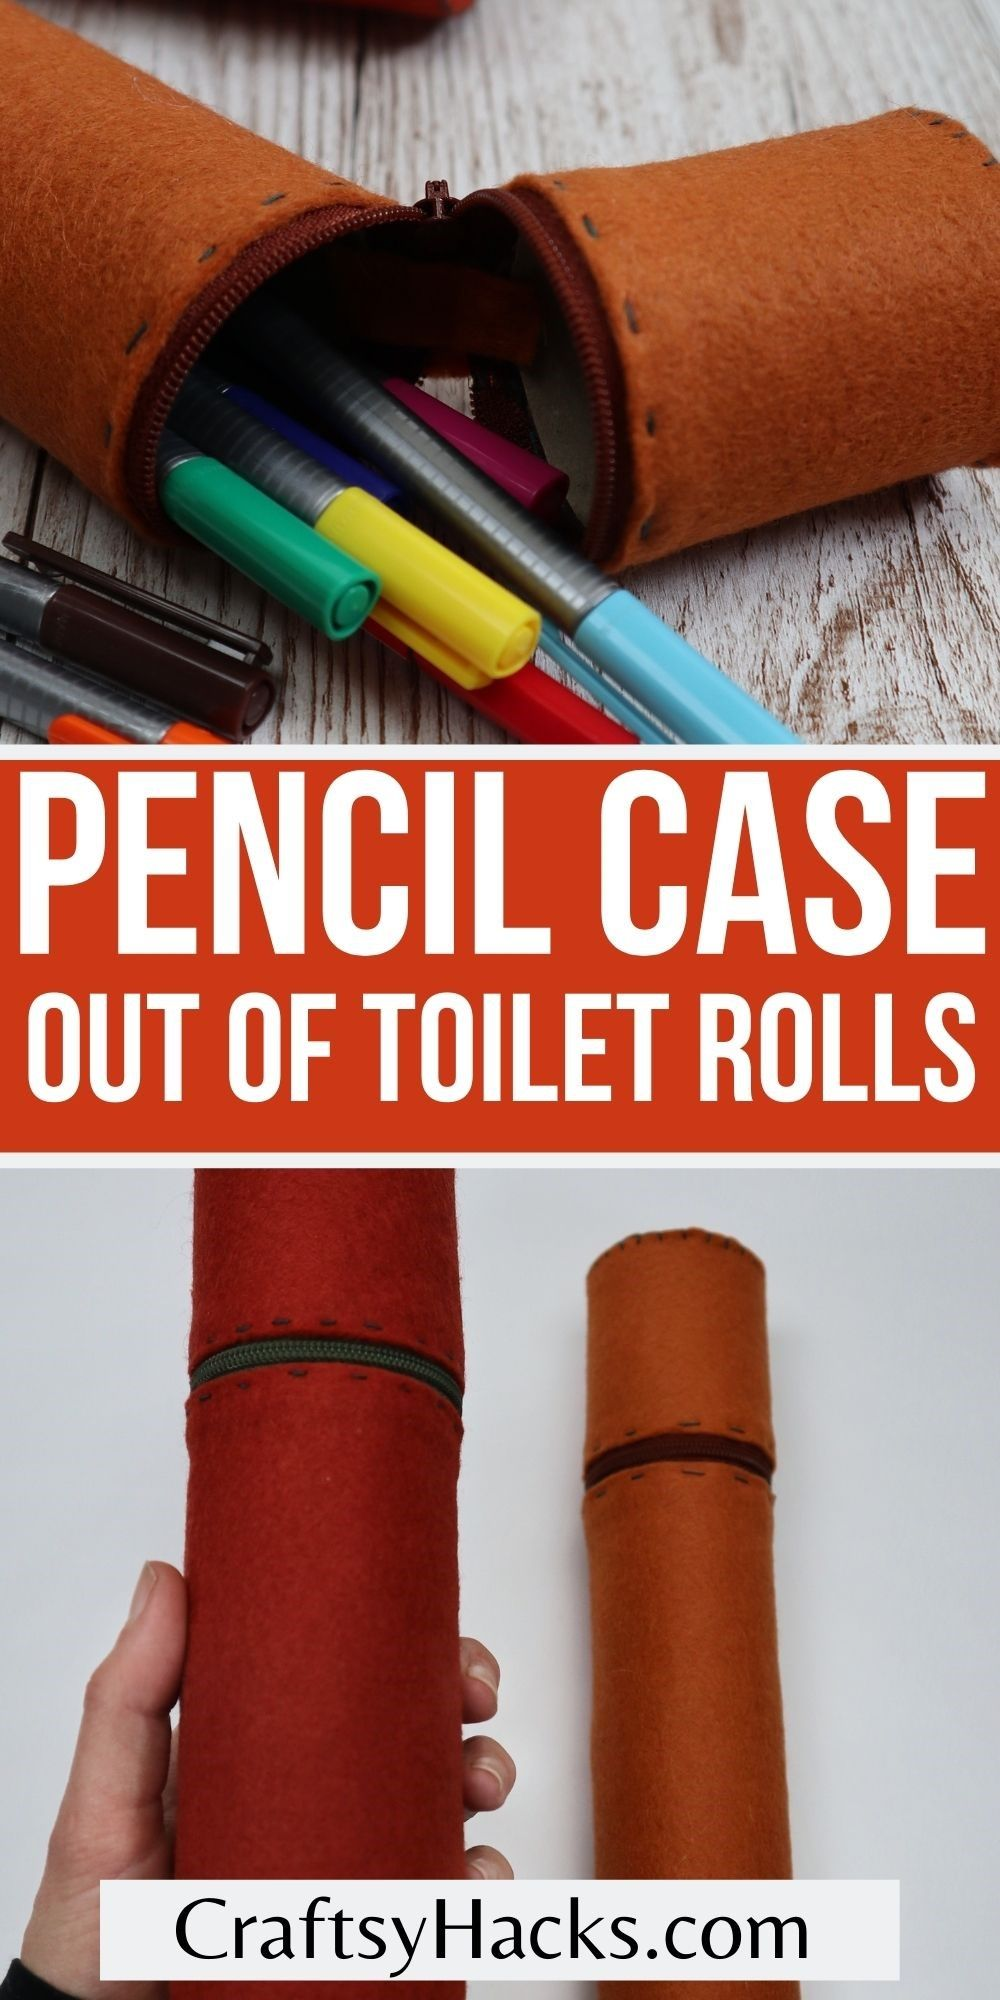 pencil case out of toilet rolls